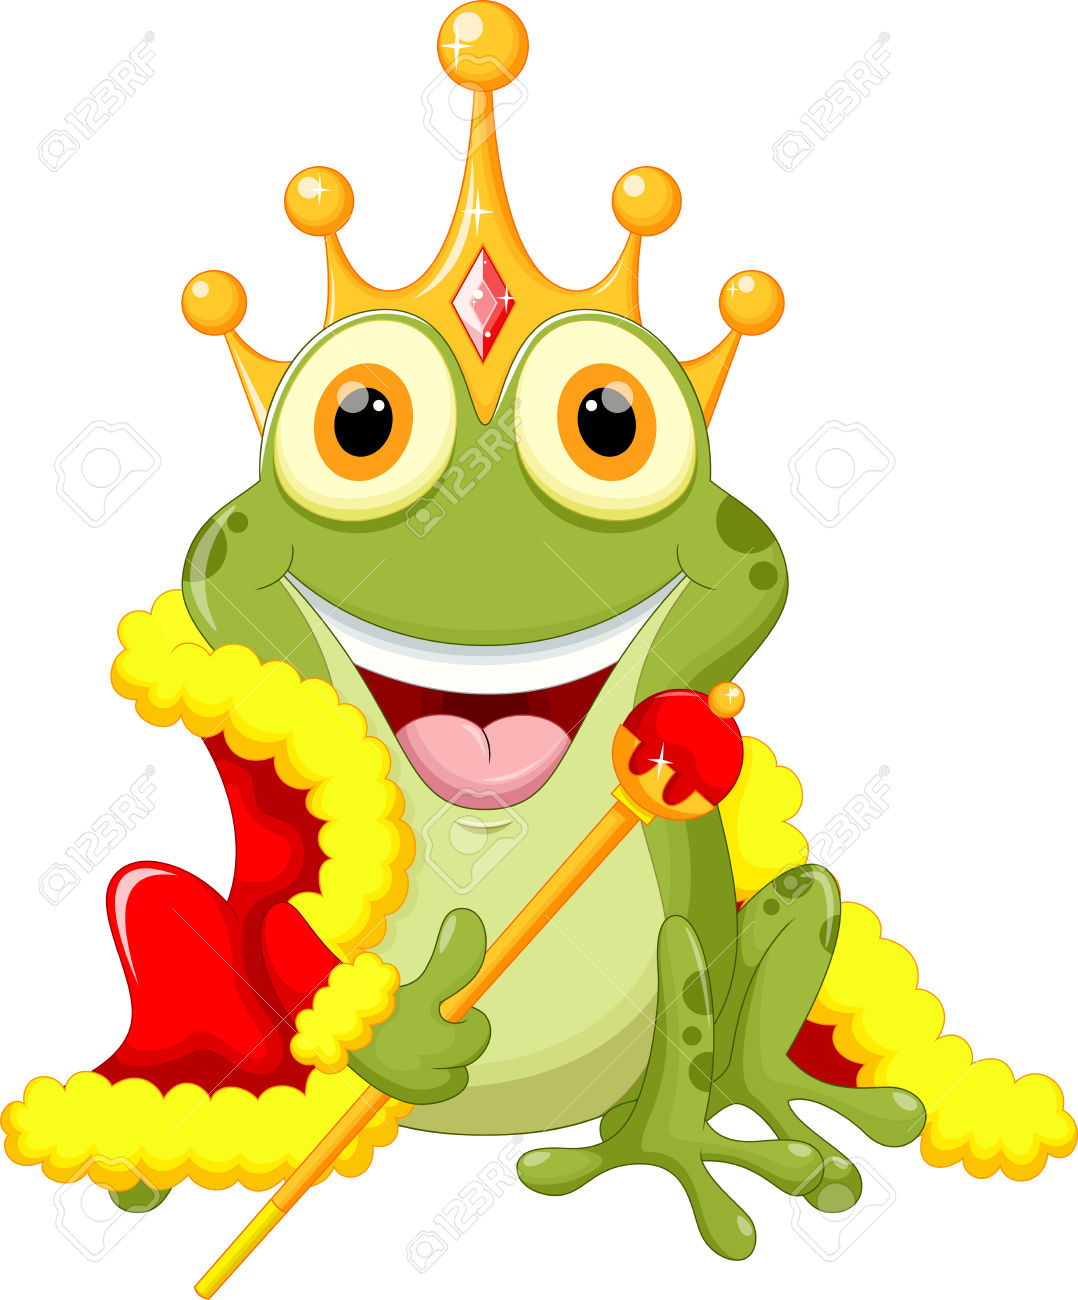 Cute Frog Prince Cartoon Royalty Free Cliparts, Vectors, And Stock.